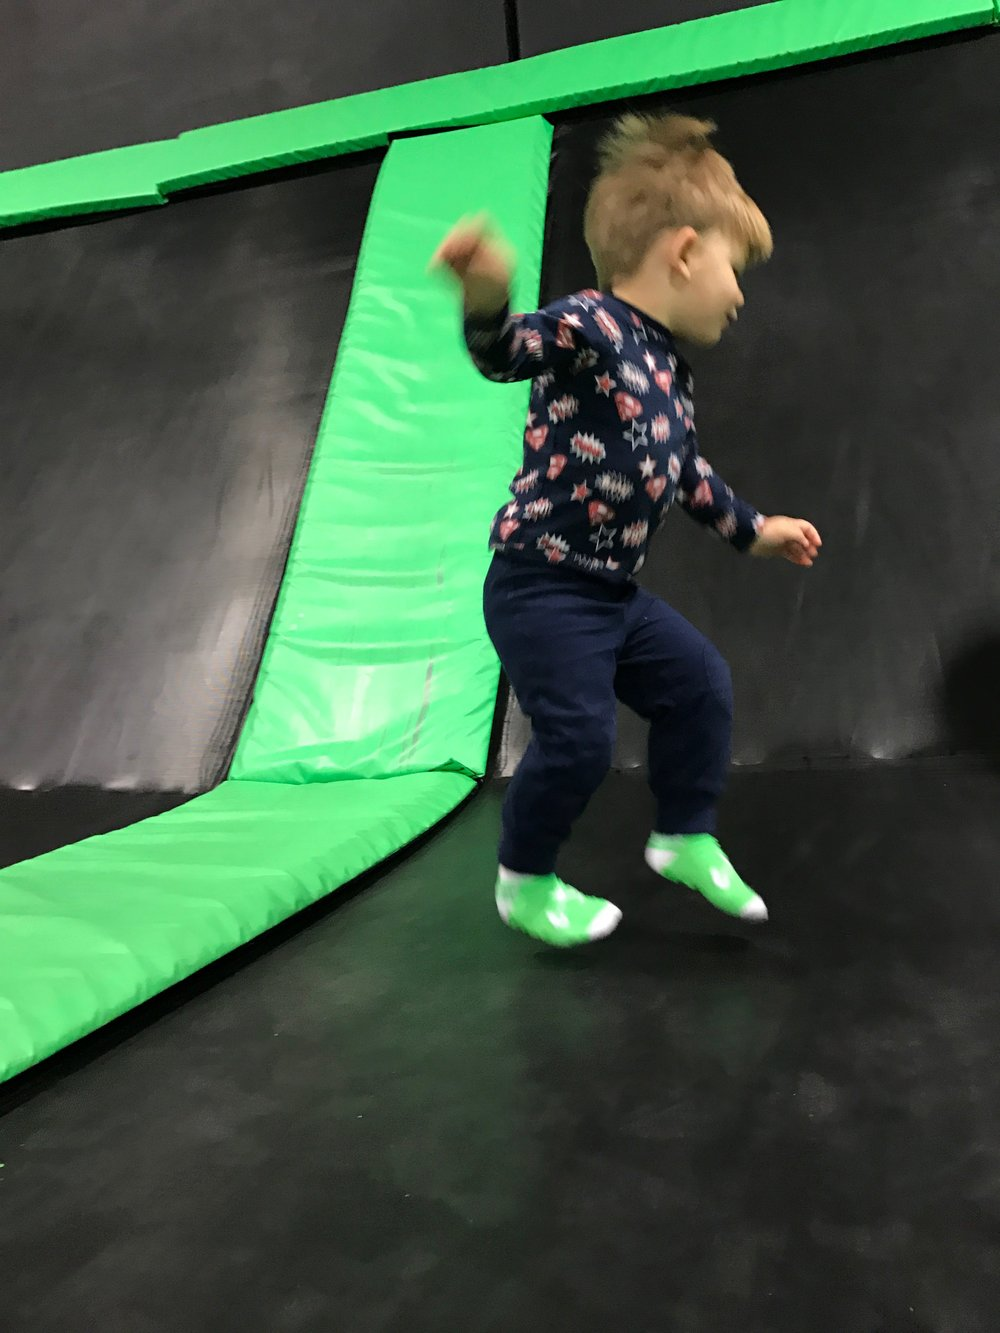 Photos from the Extreme Air Park are all a blur... as they should be. This place is far too exciting to stand still, even for .35 seconds.